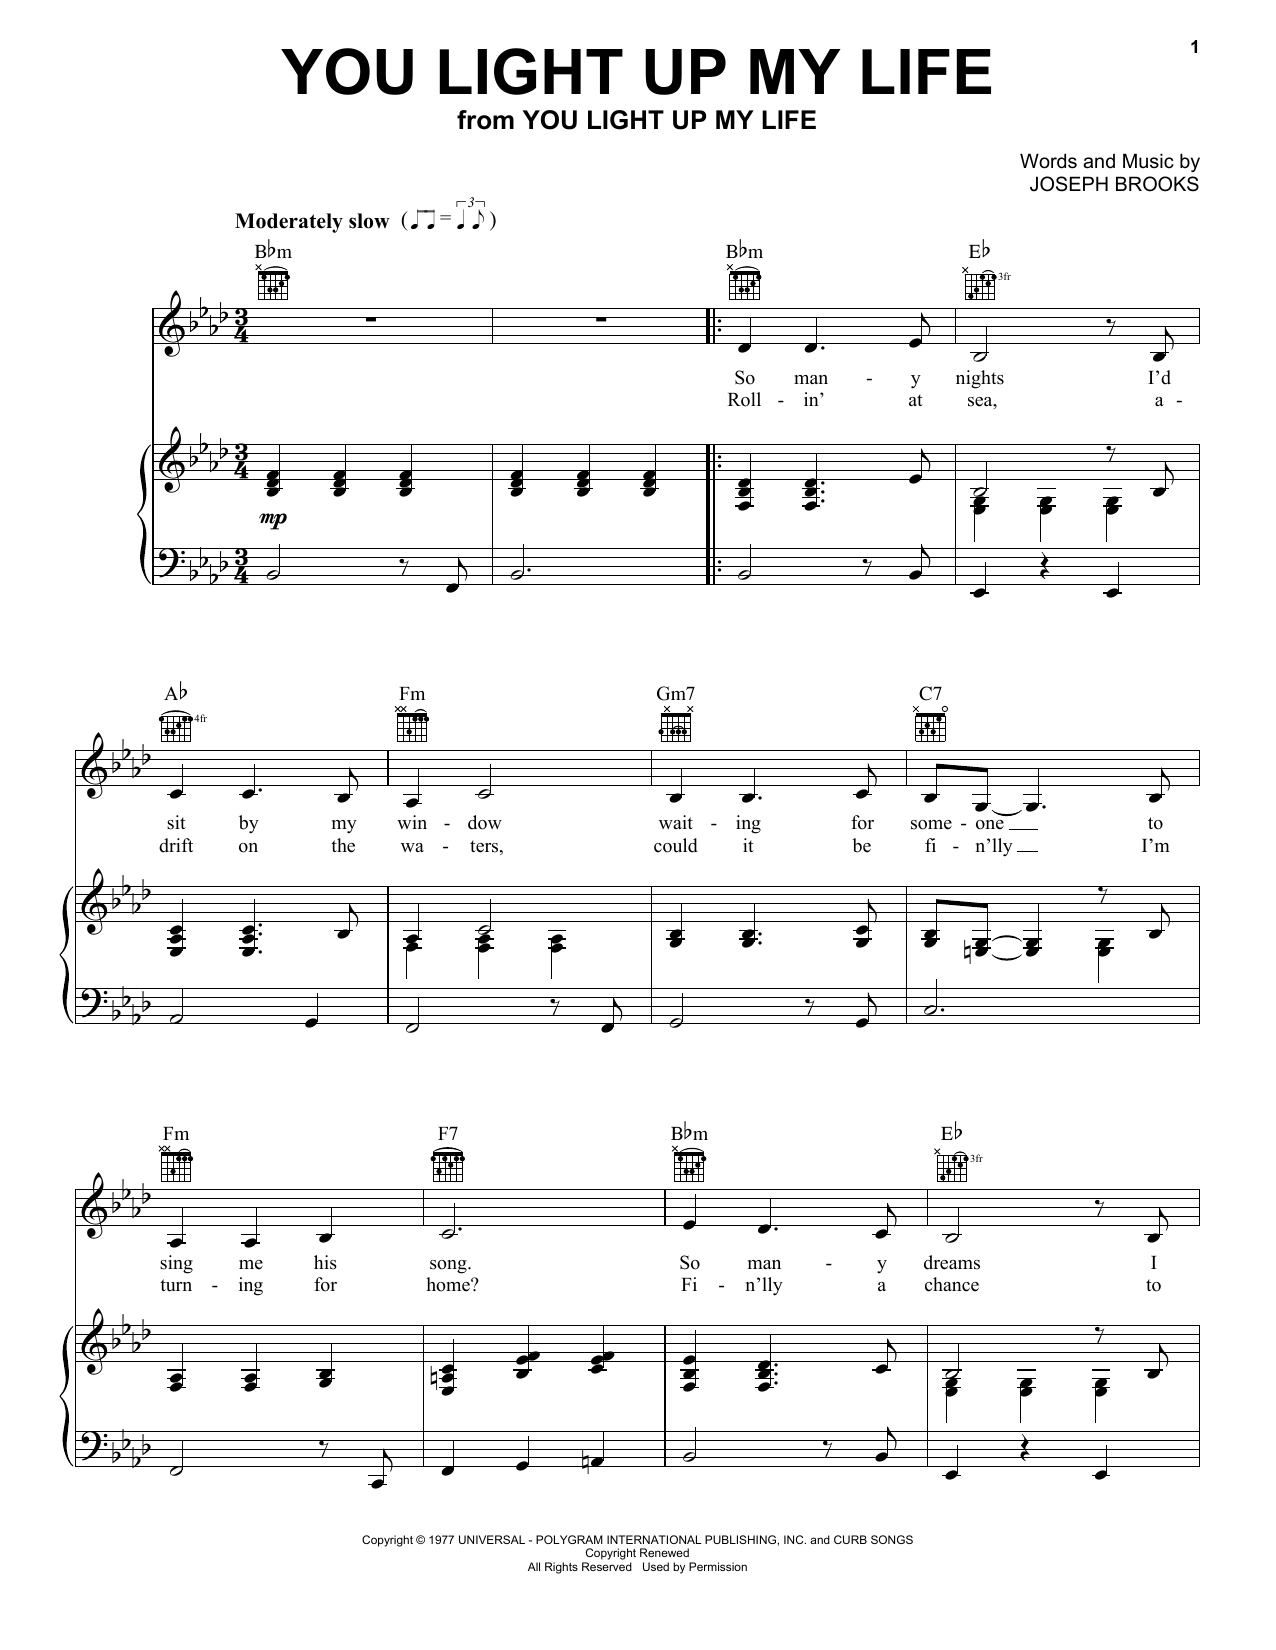 You Light Up My Life sheet music for voice, piano or guitar by Joseph Brooks